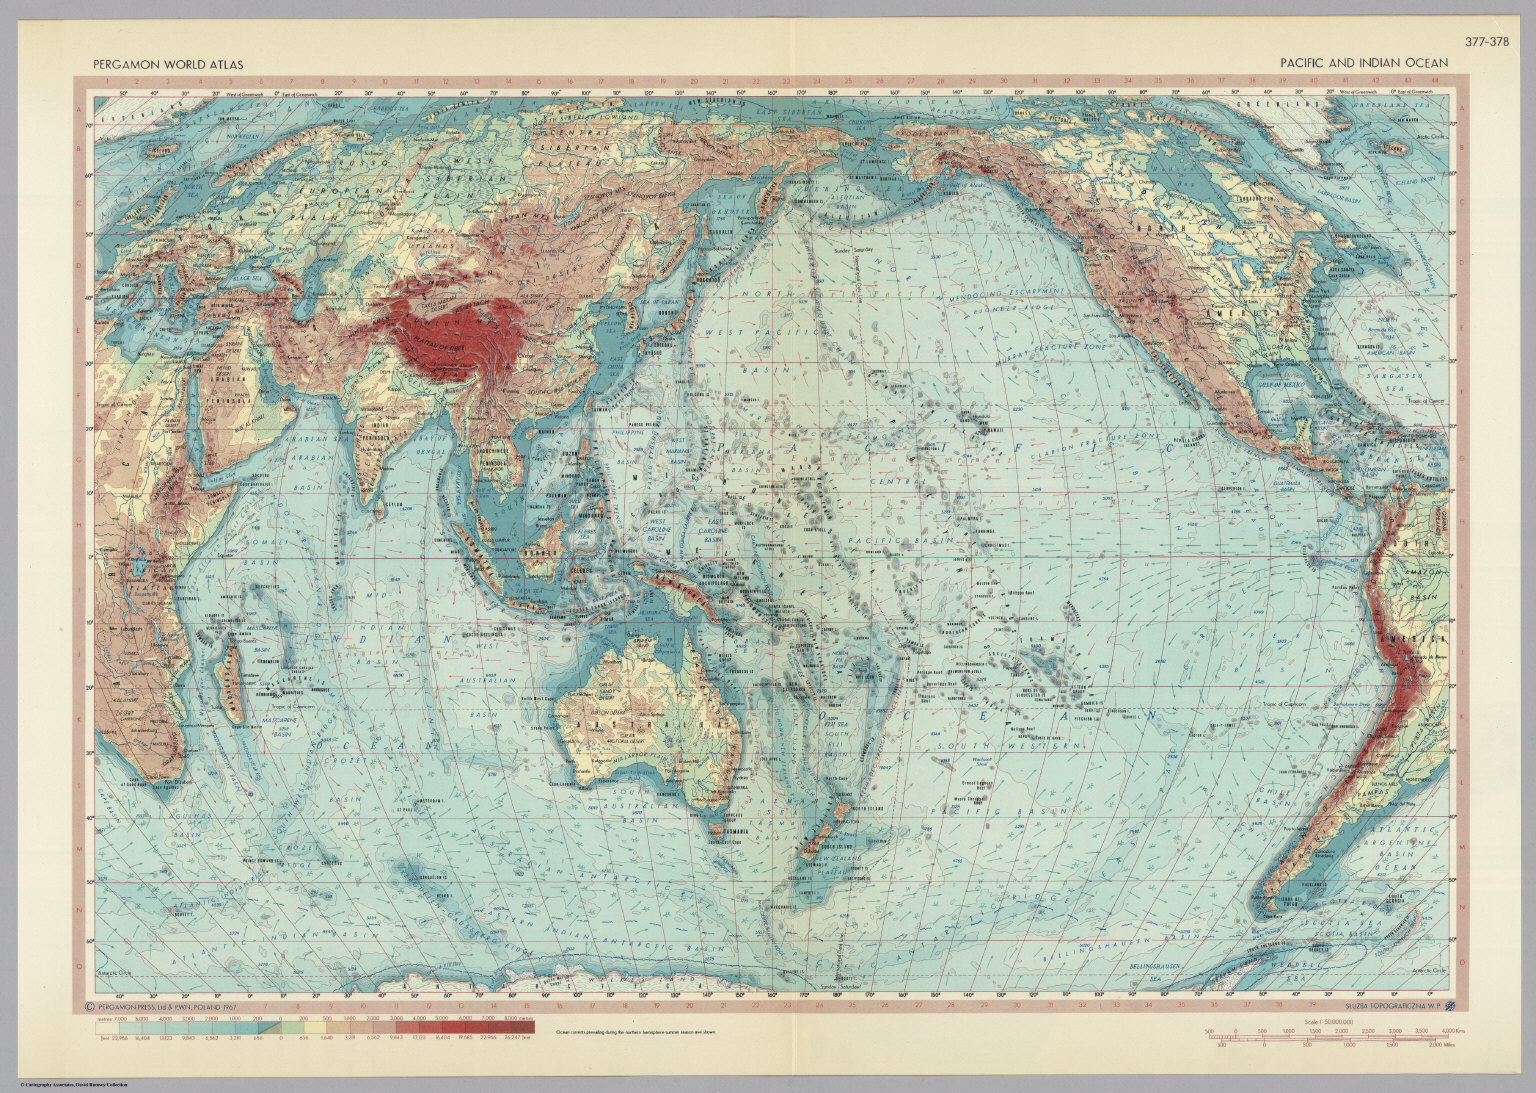 Pacific And Indian Ocean. Pergamon World Atlas.